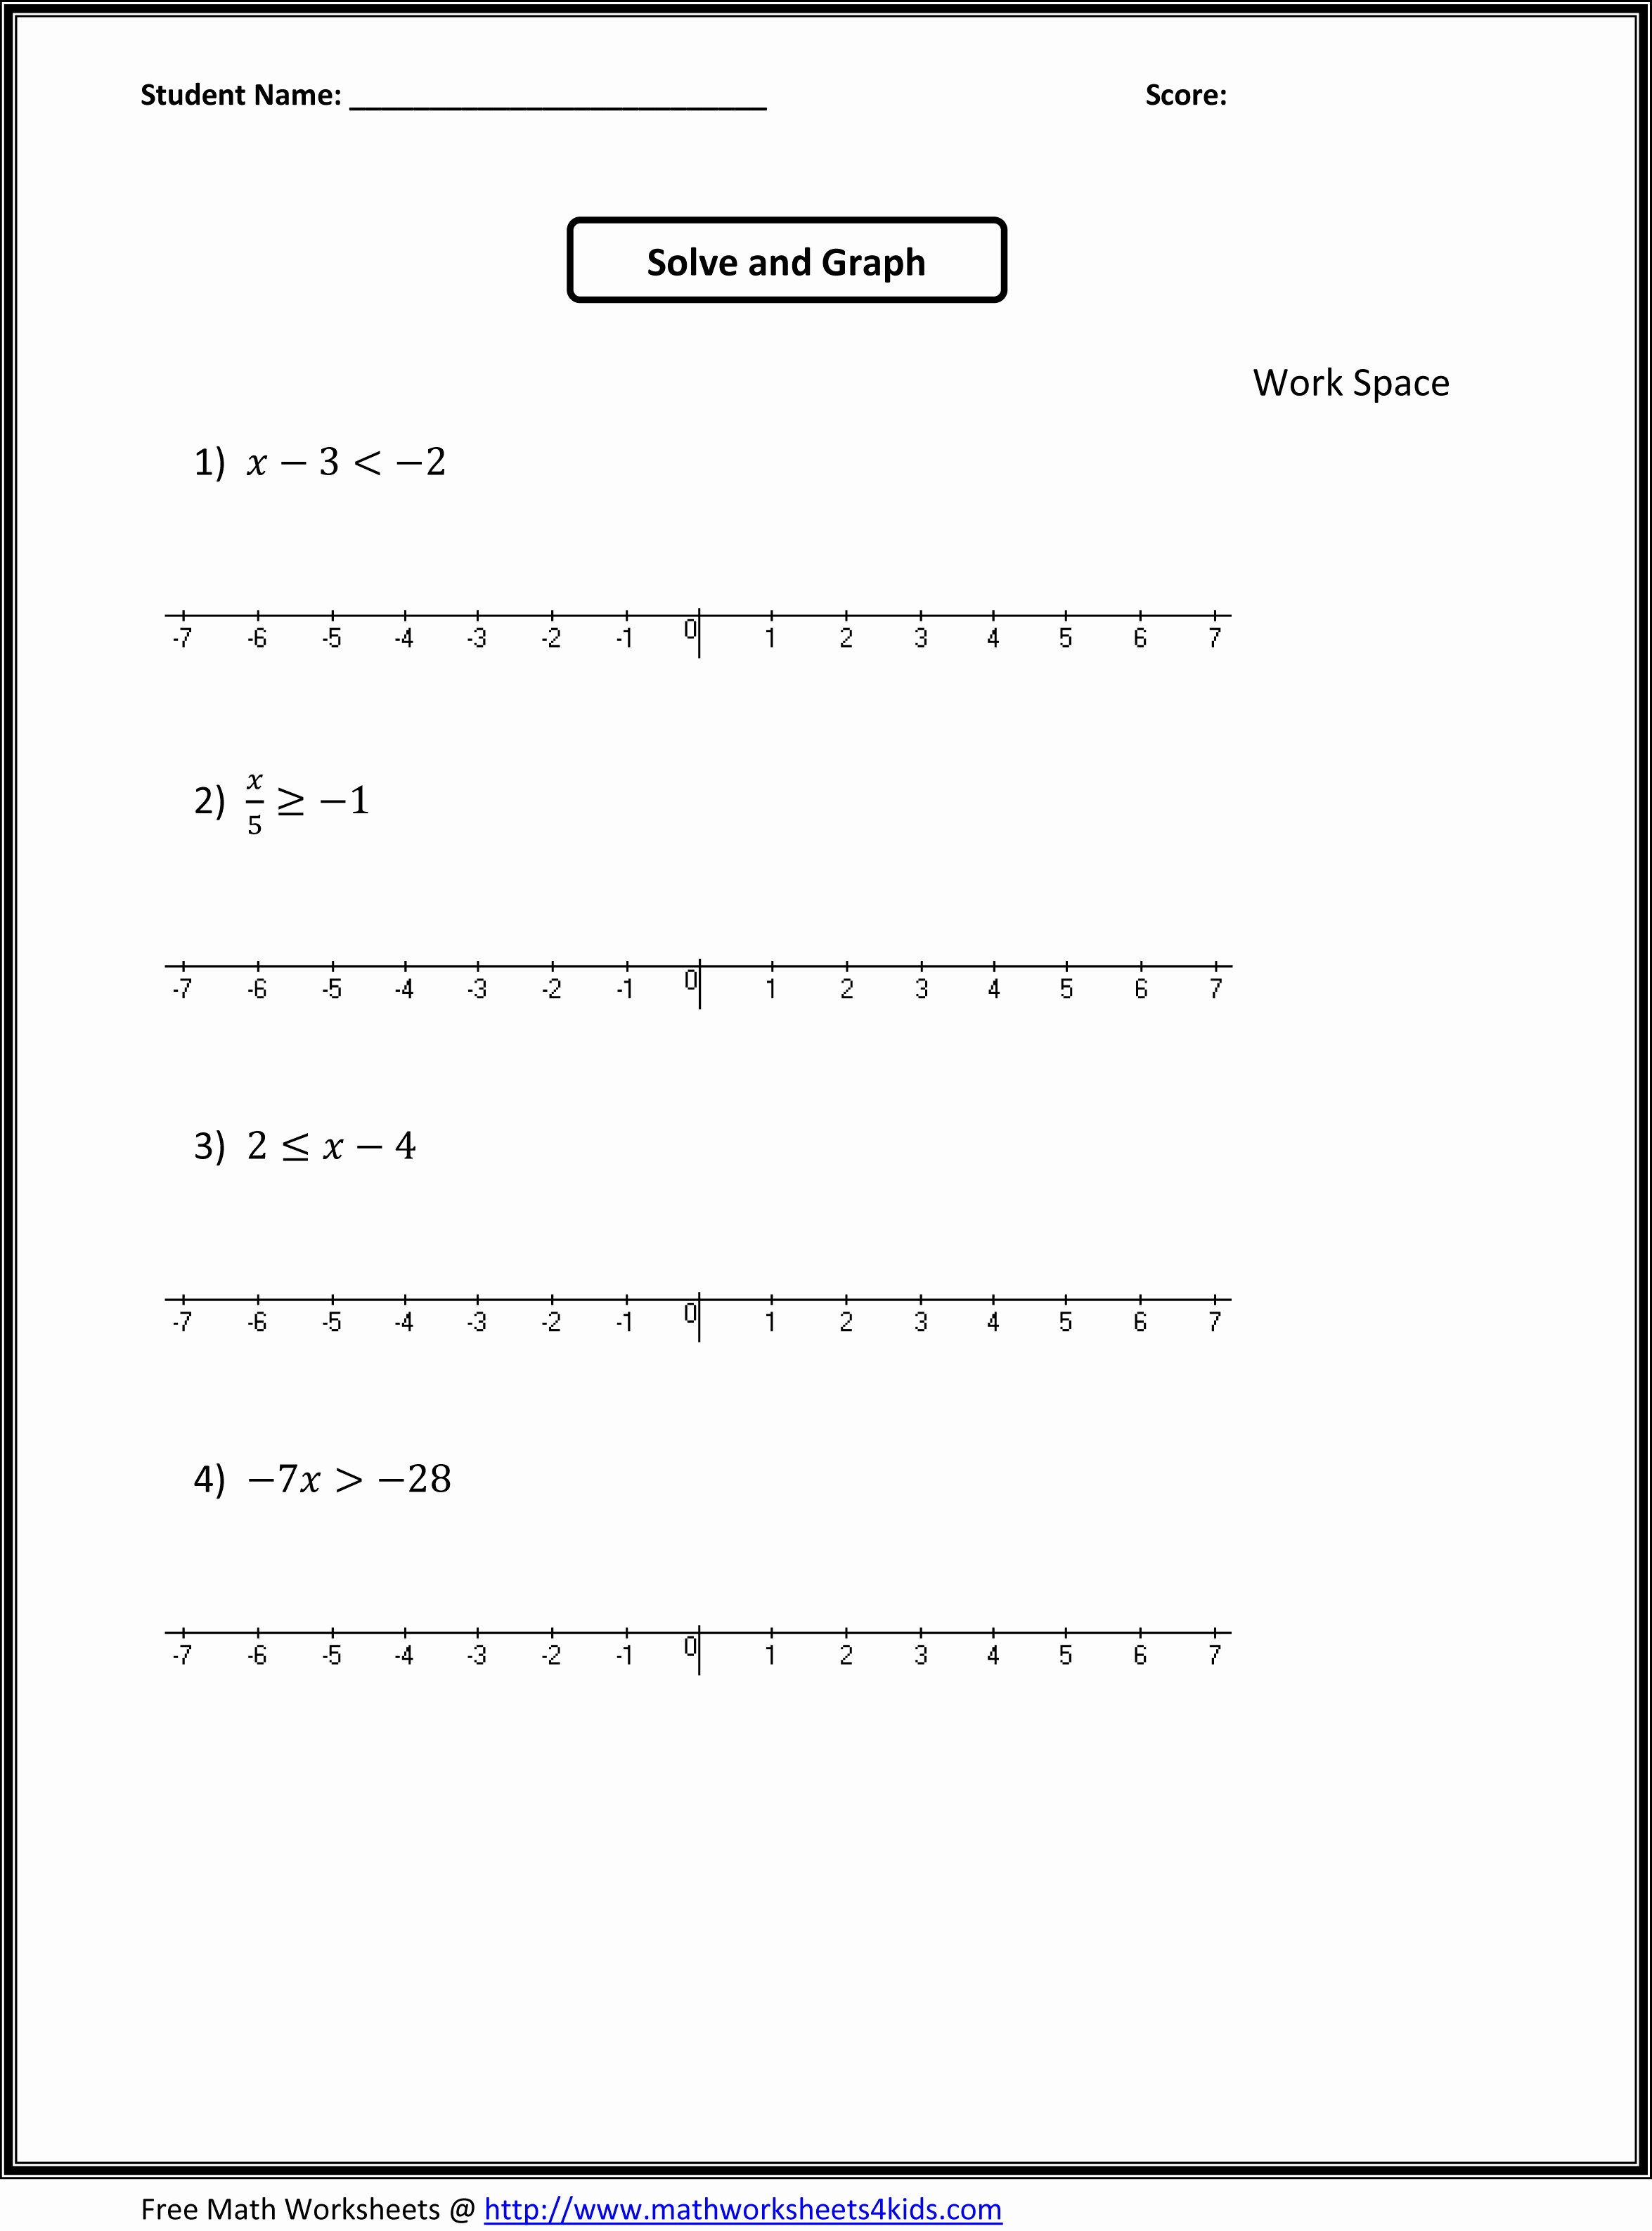 Solve and Graph Inequalities Worksheet New 7th Grade Math Worksheets